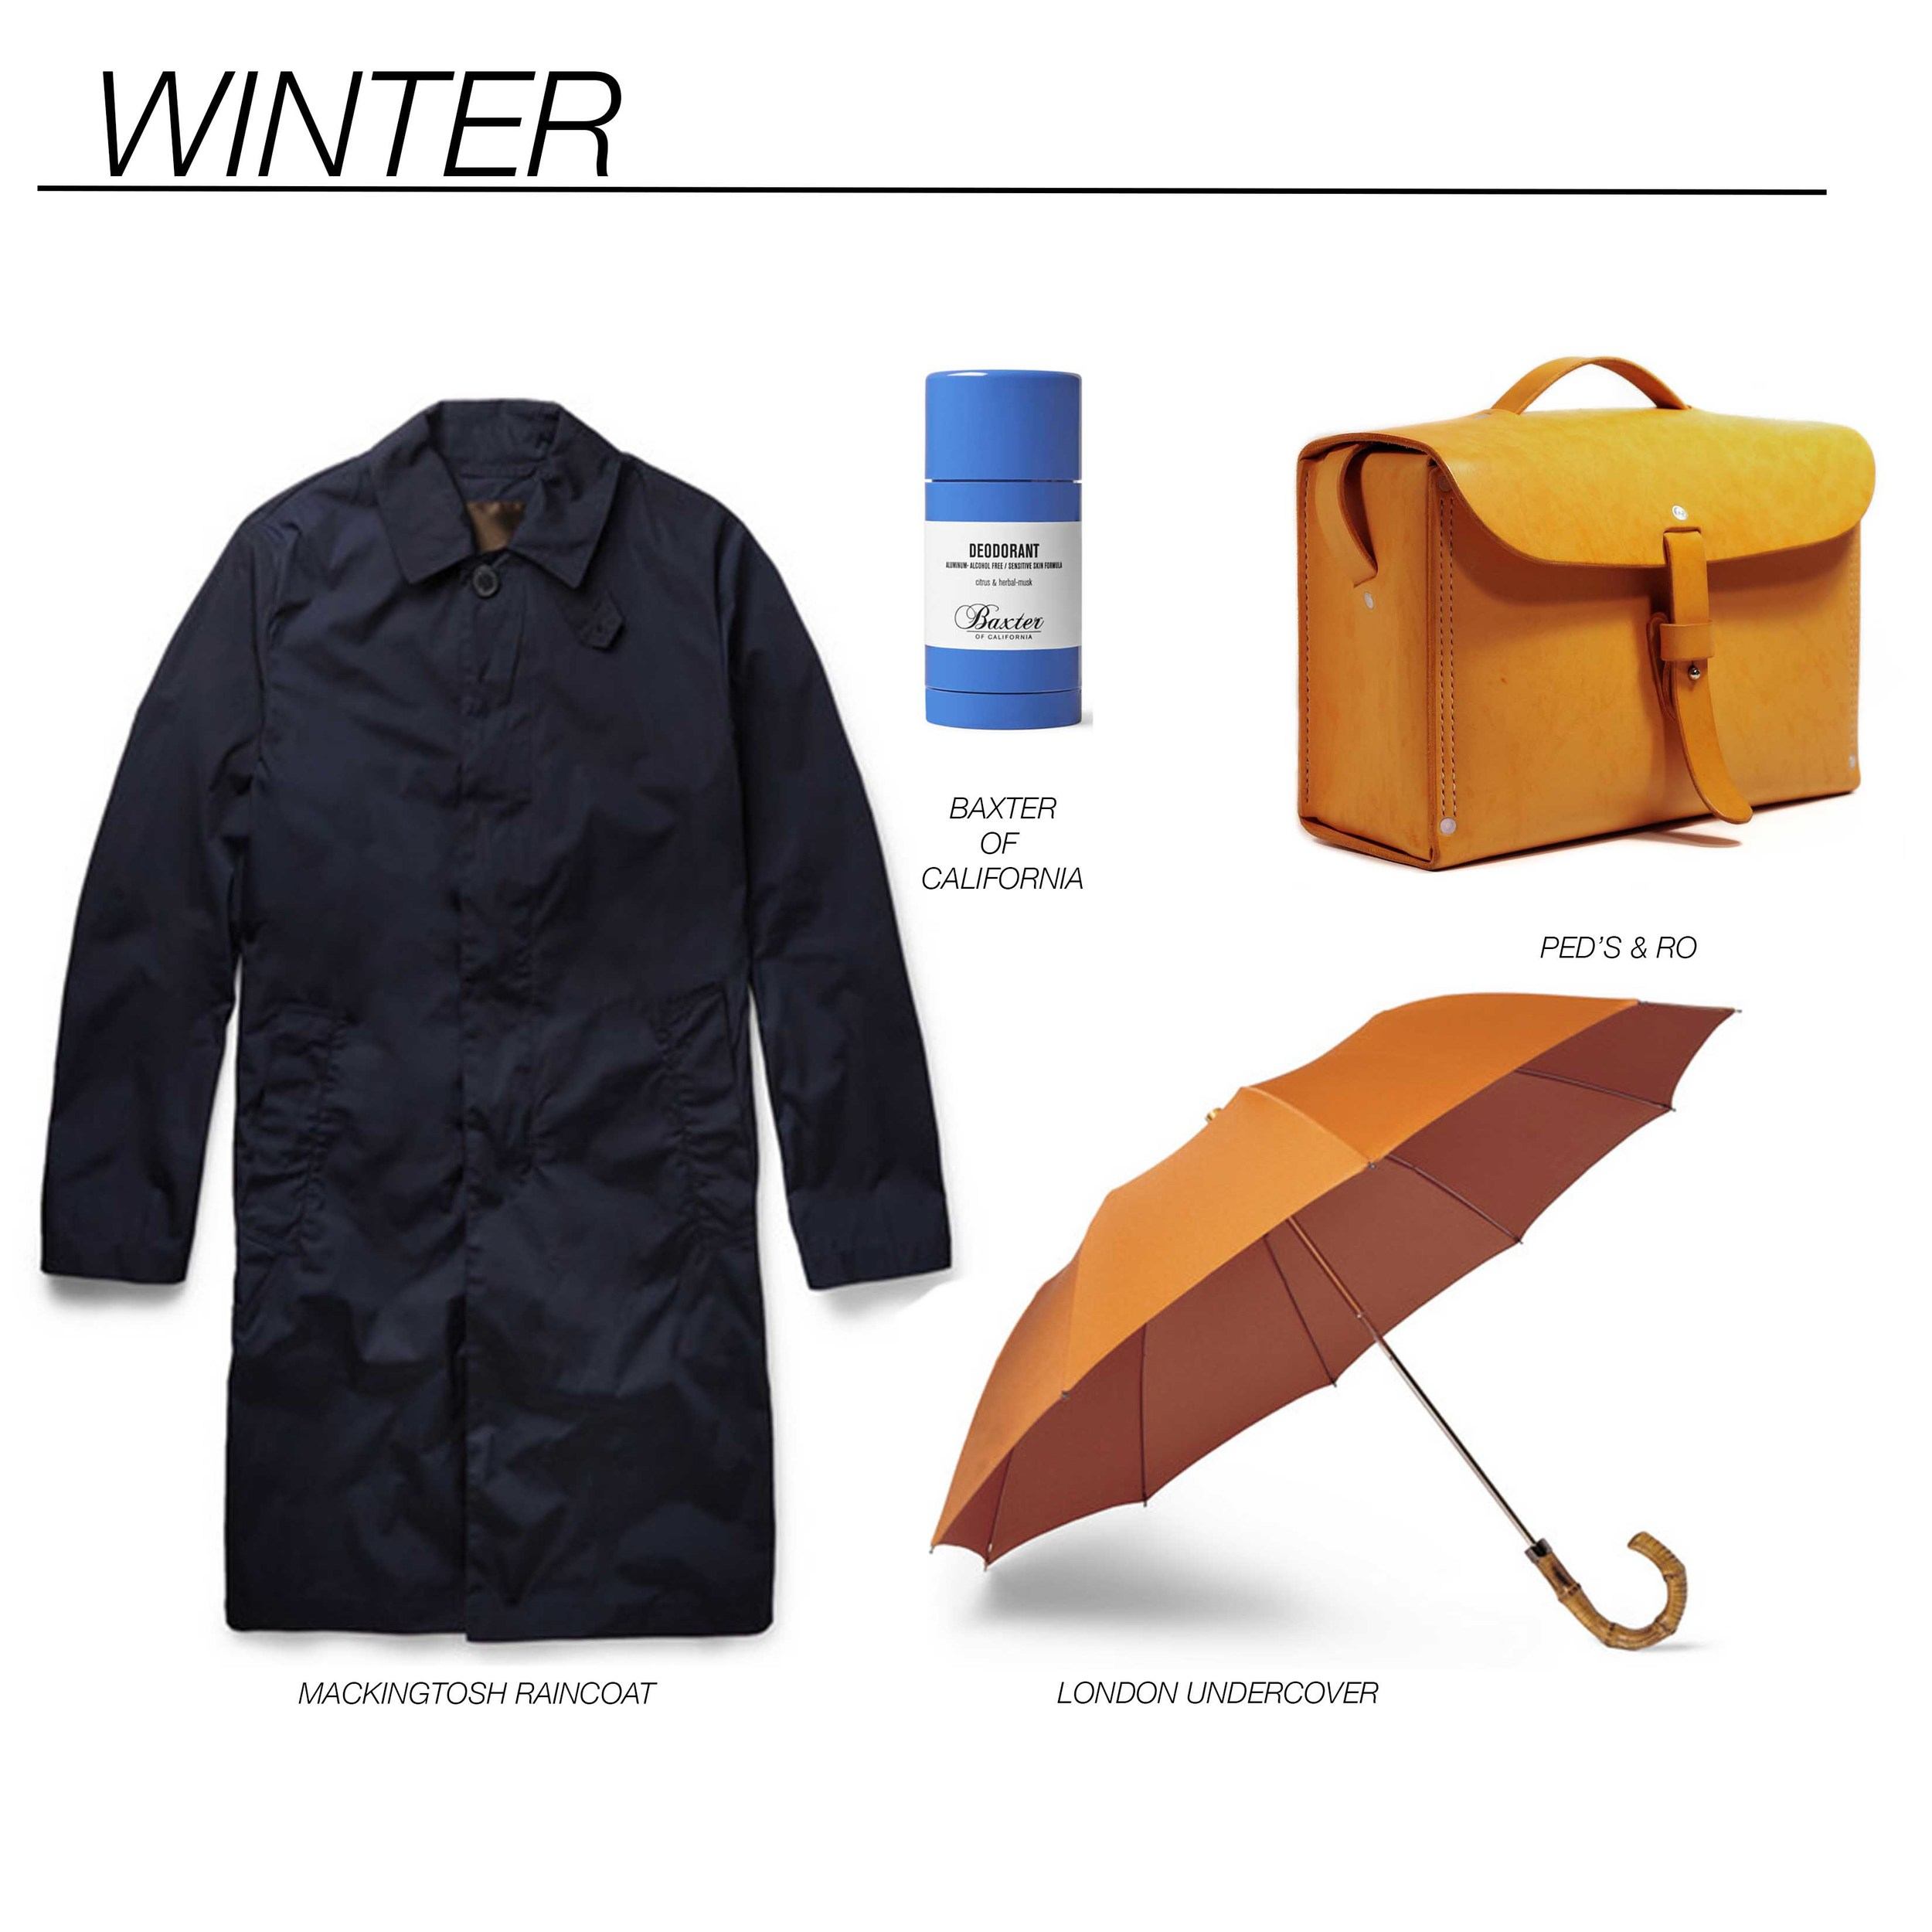 Winter outfit.jpg